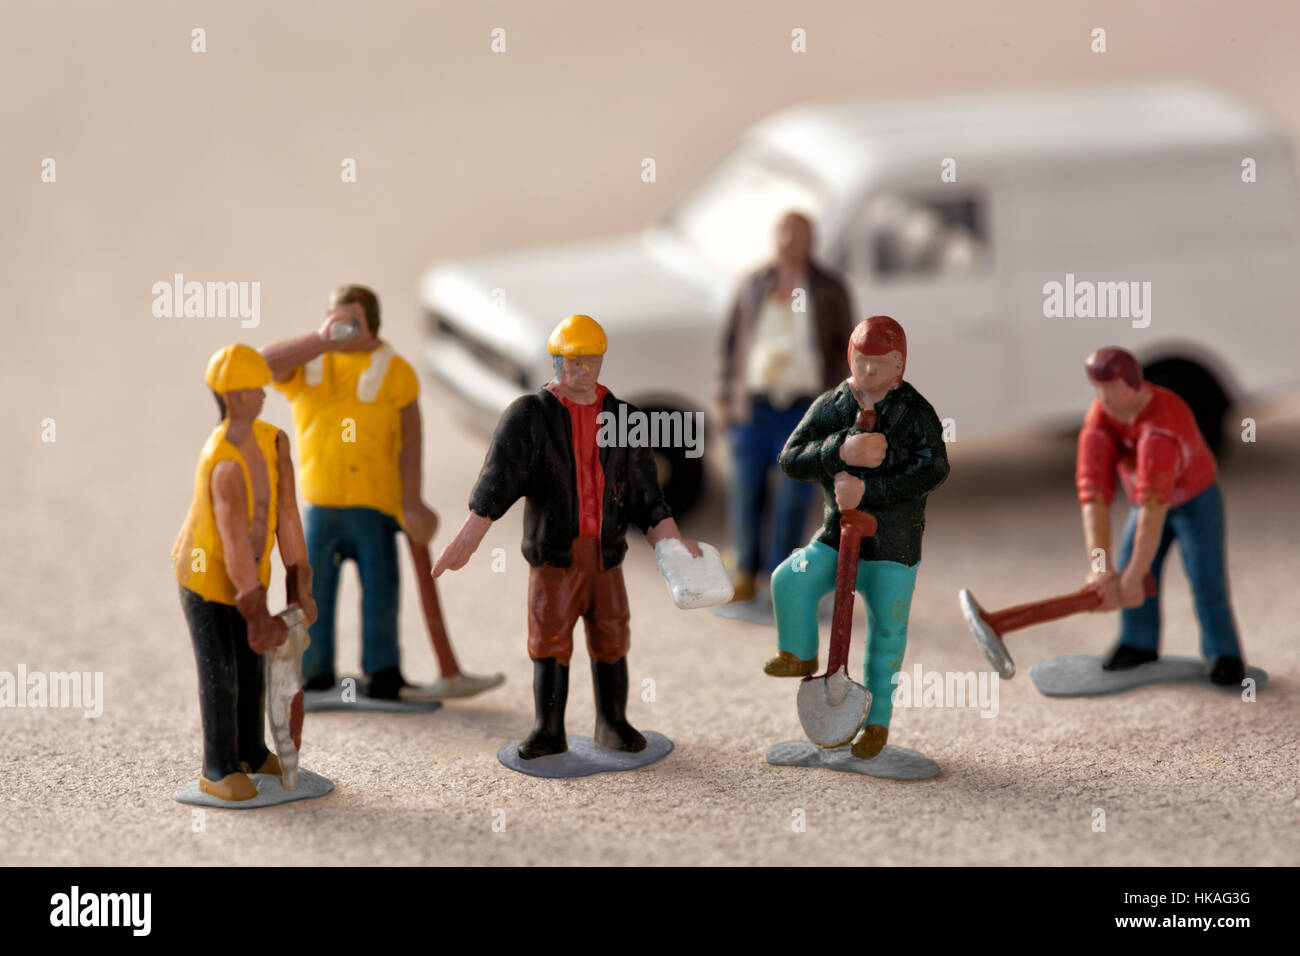 Miniature workmen stand around their foreman on an outdoor site with a van - Stock Image